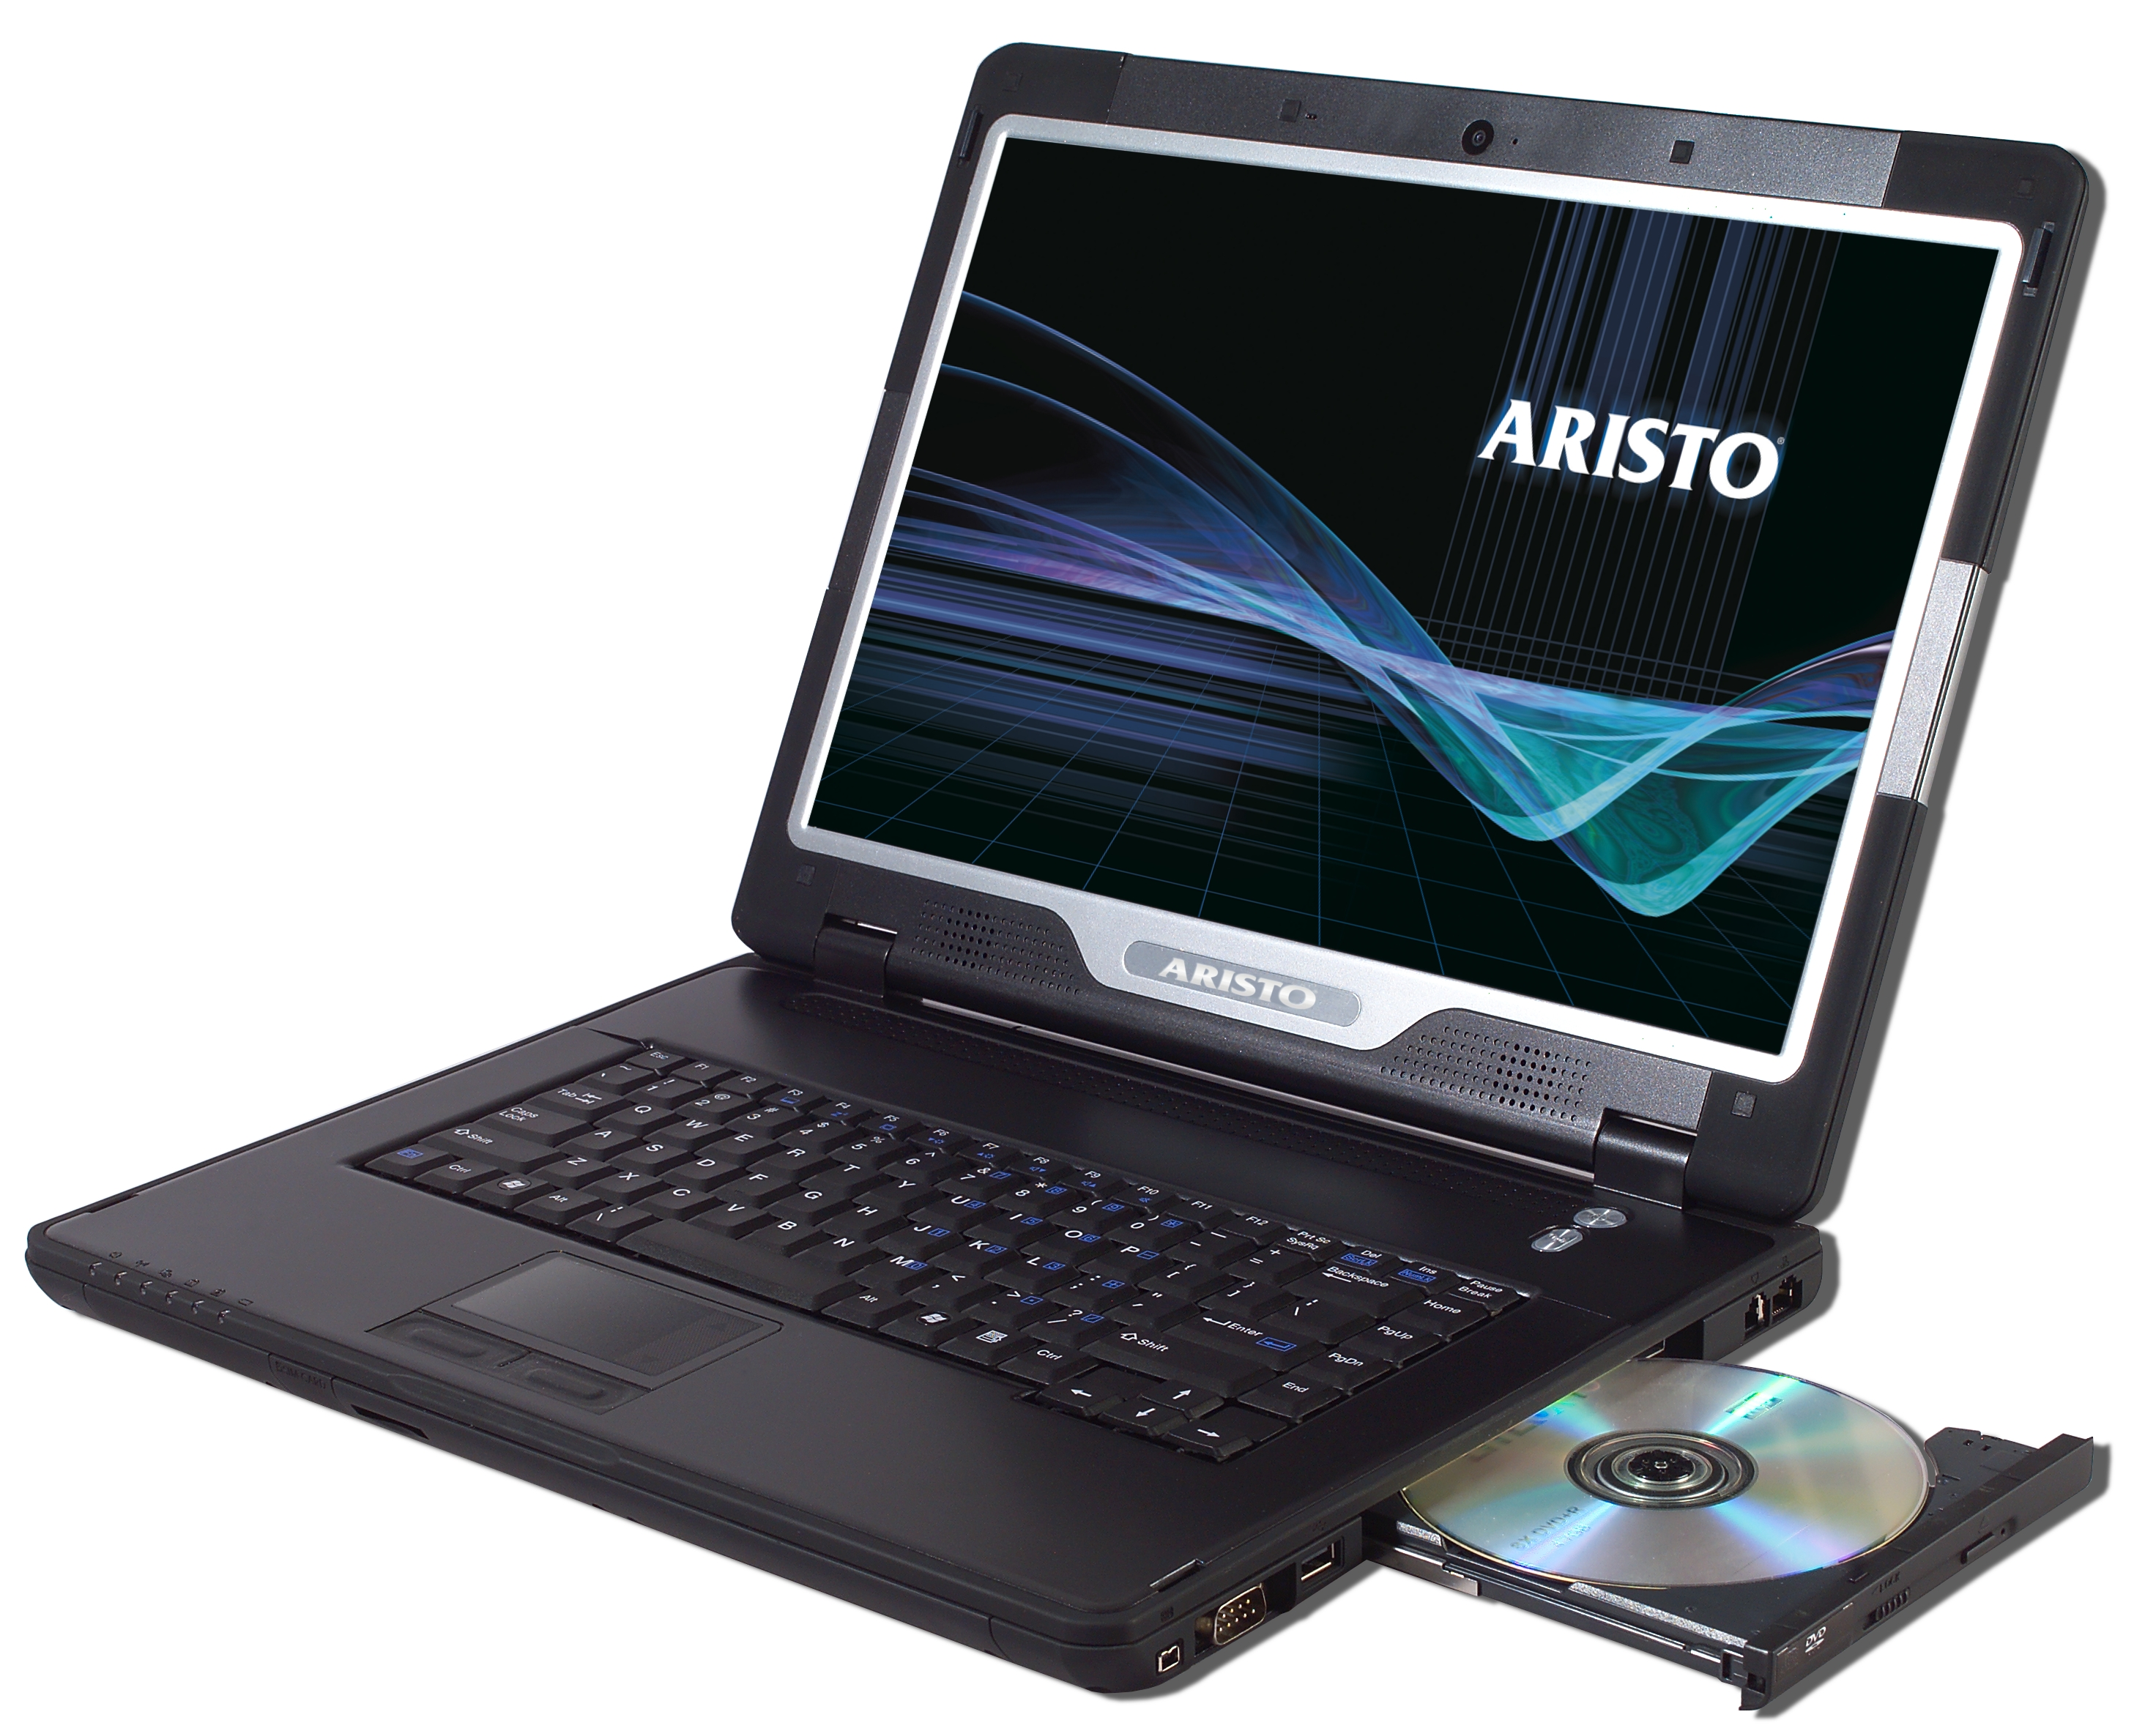 ARISTO STRONG1500 DRIVERS WINDOWS XP